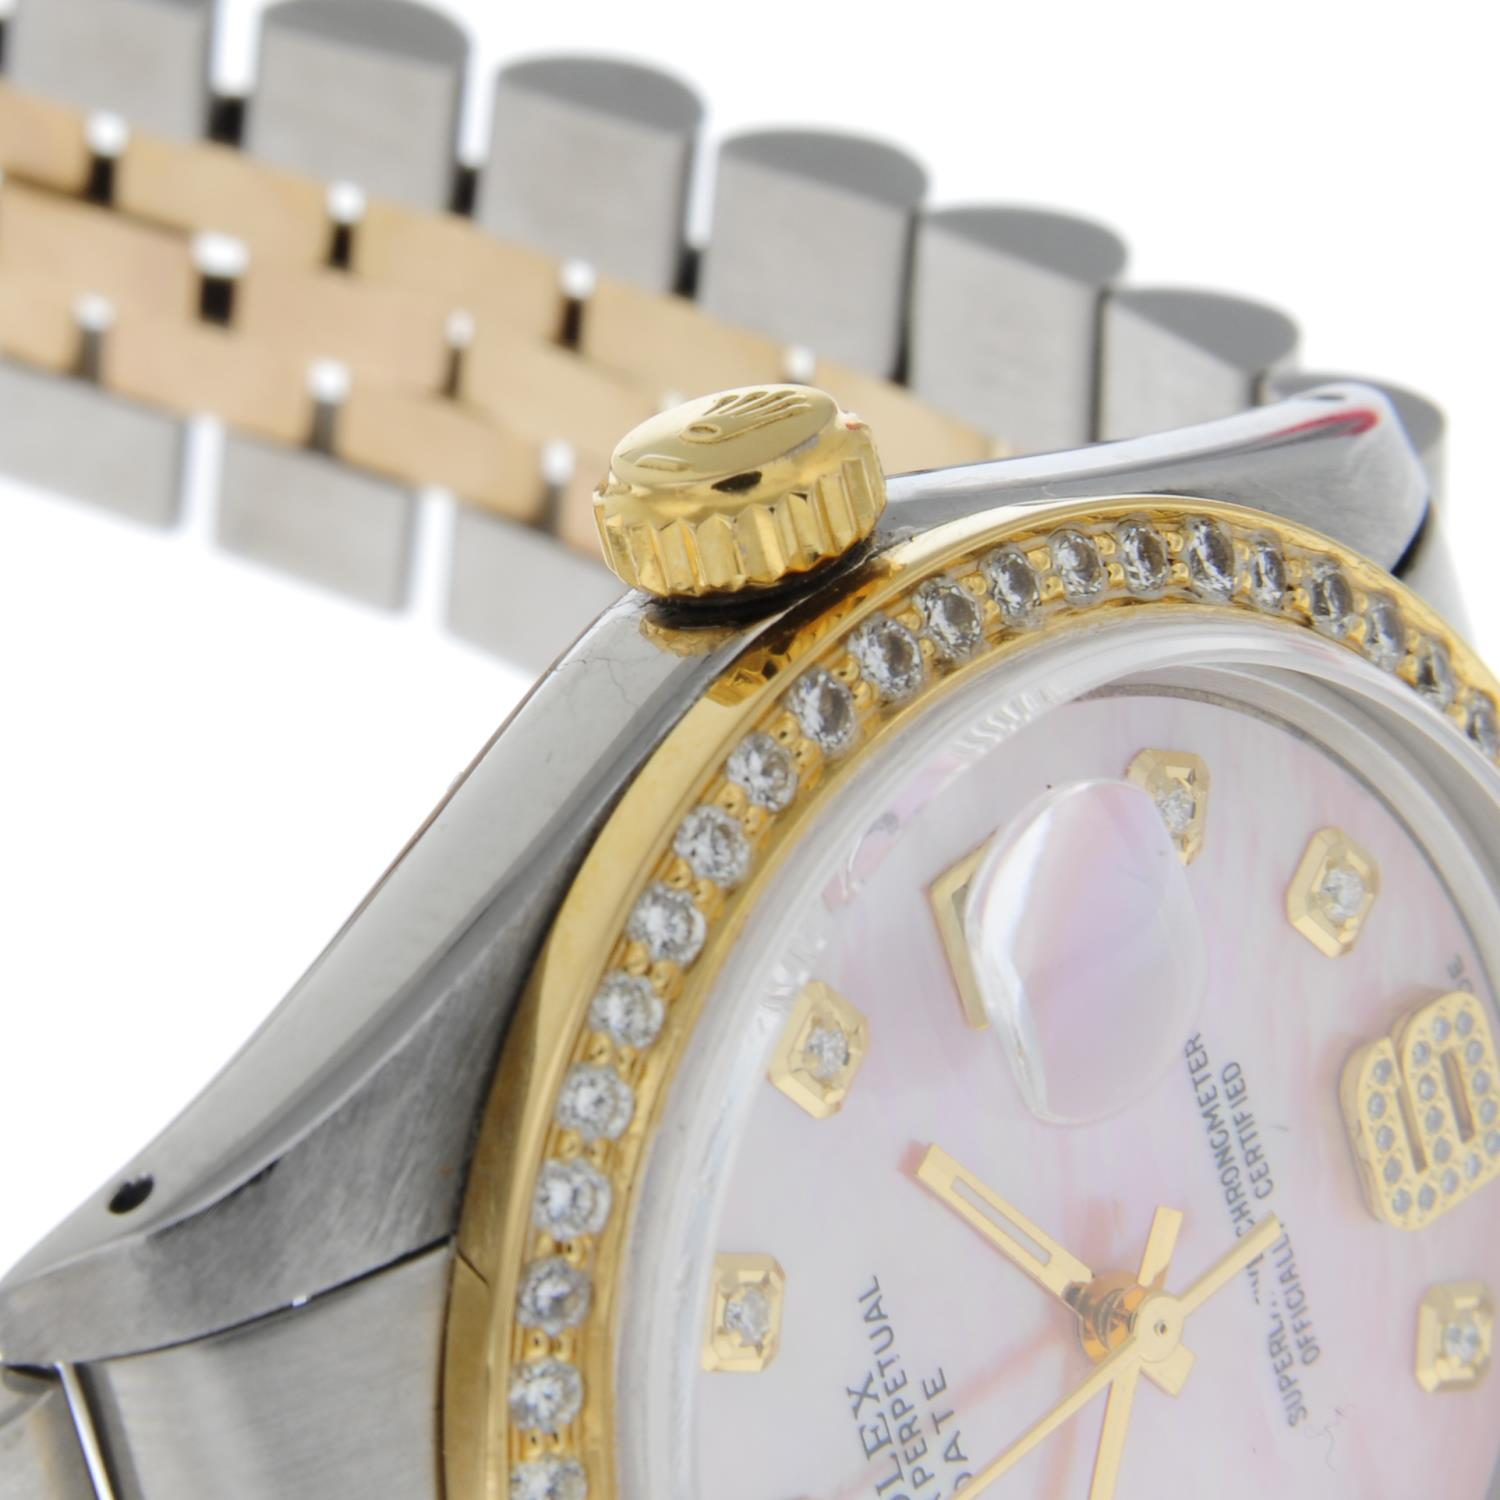 ROLEX - an Oyster Perpetual Date bracelet watch. - Image 5 of 5